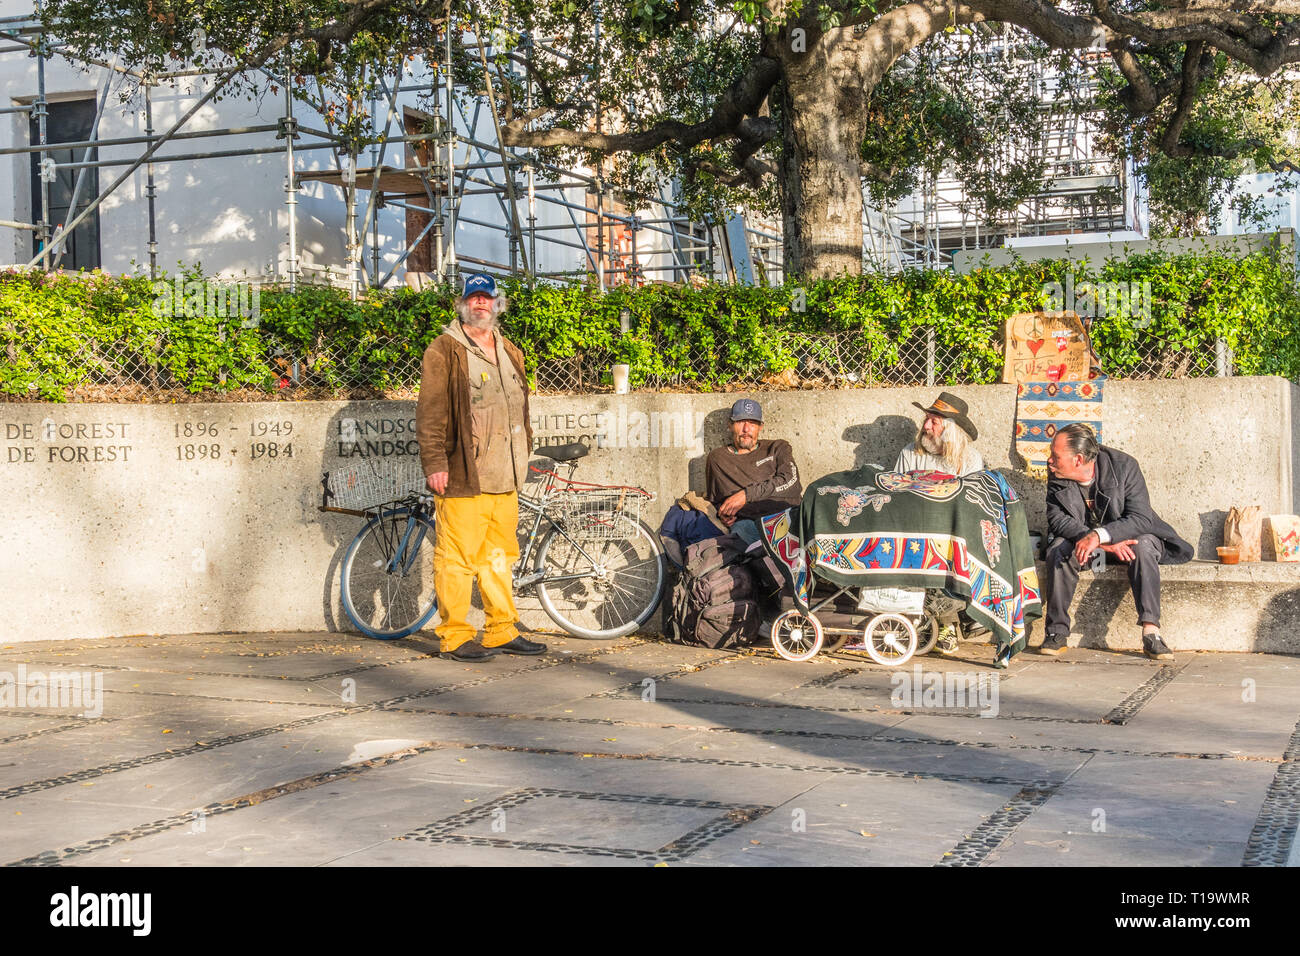 Homeless men gathered together on the corner of State Street and Anapamu at sundown. - Stock Image